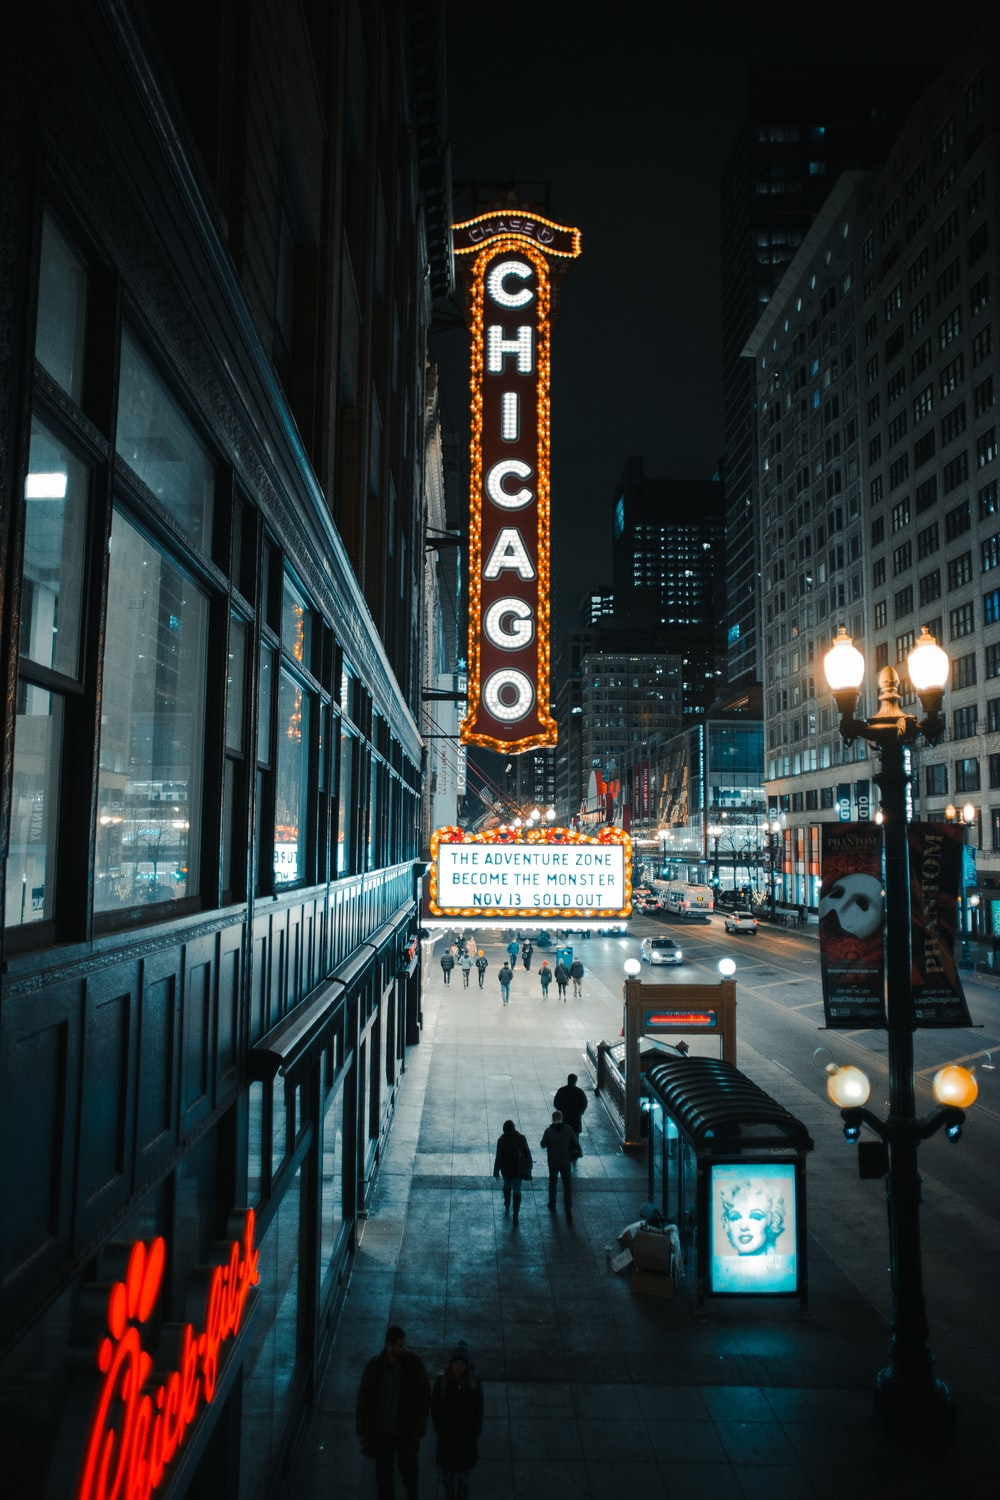 Chicago signage beside wall